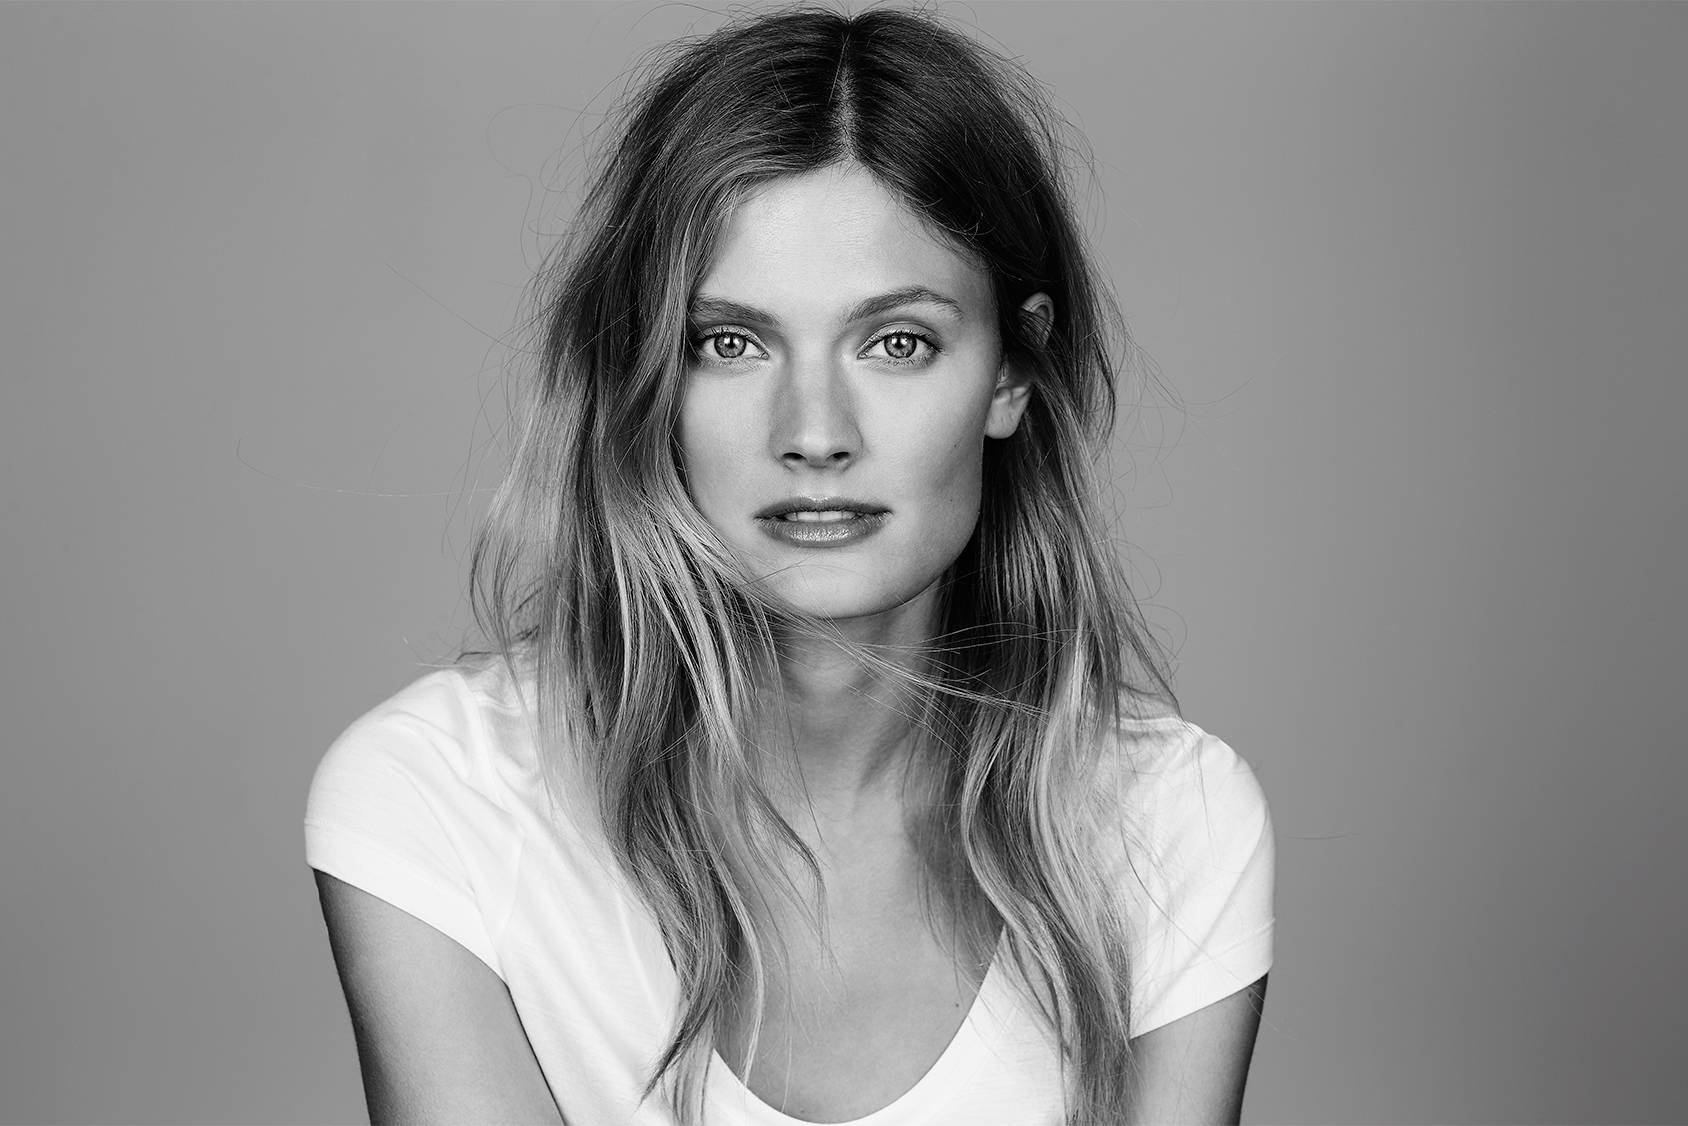 CONSTANCE JABLONSKI: THE ULTIMATE (ROLE) MODEL